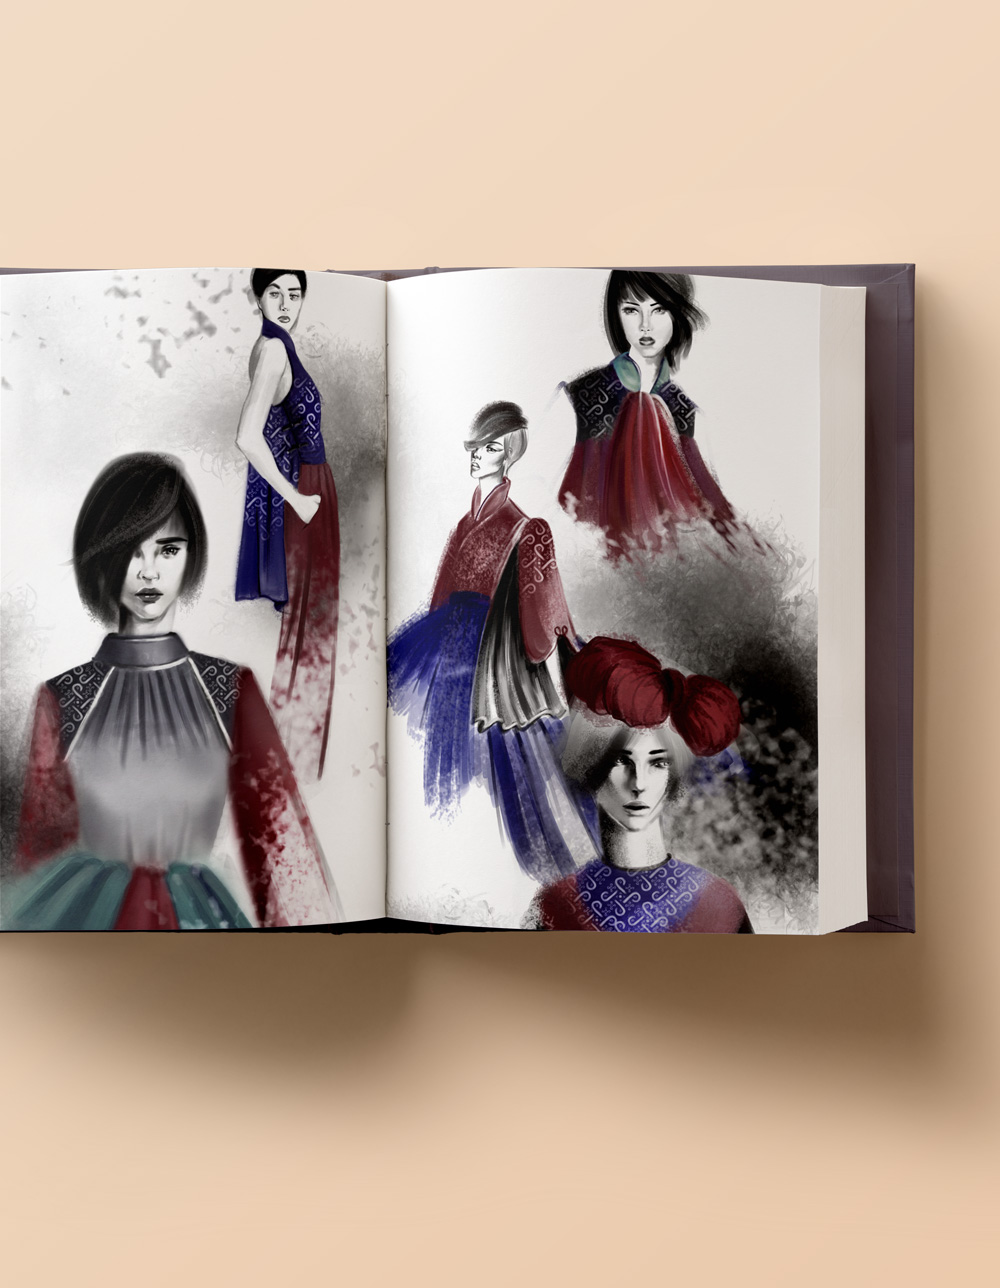 Fashion illustrations completed as part of coursework at Parsons School of Design.